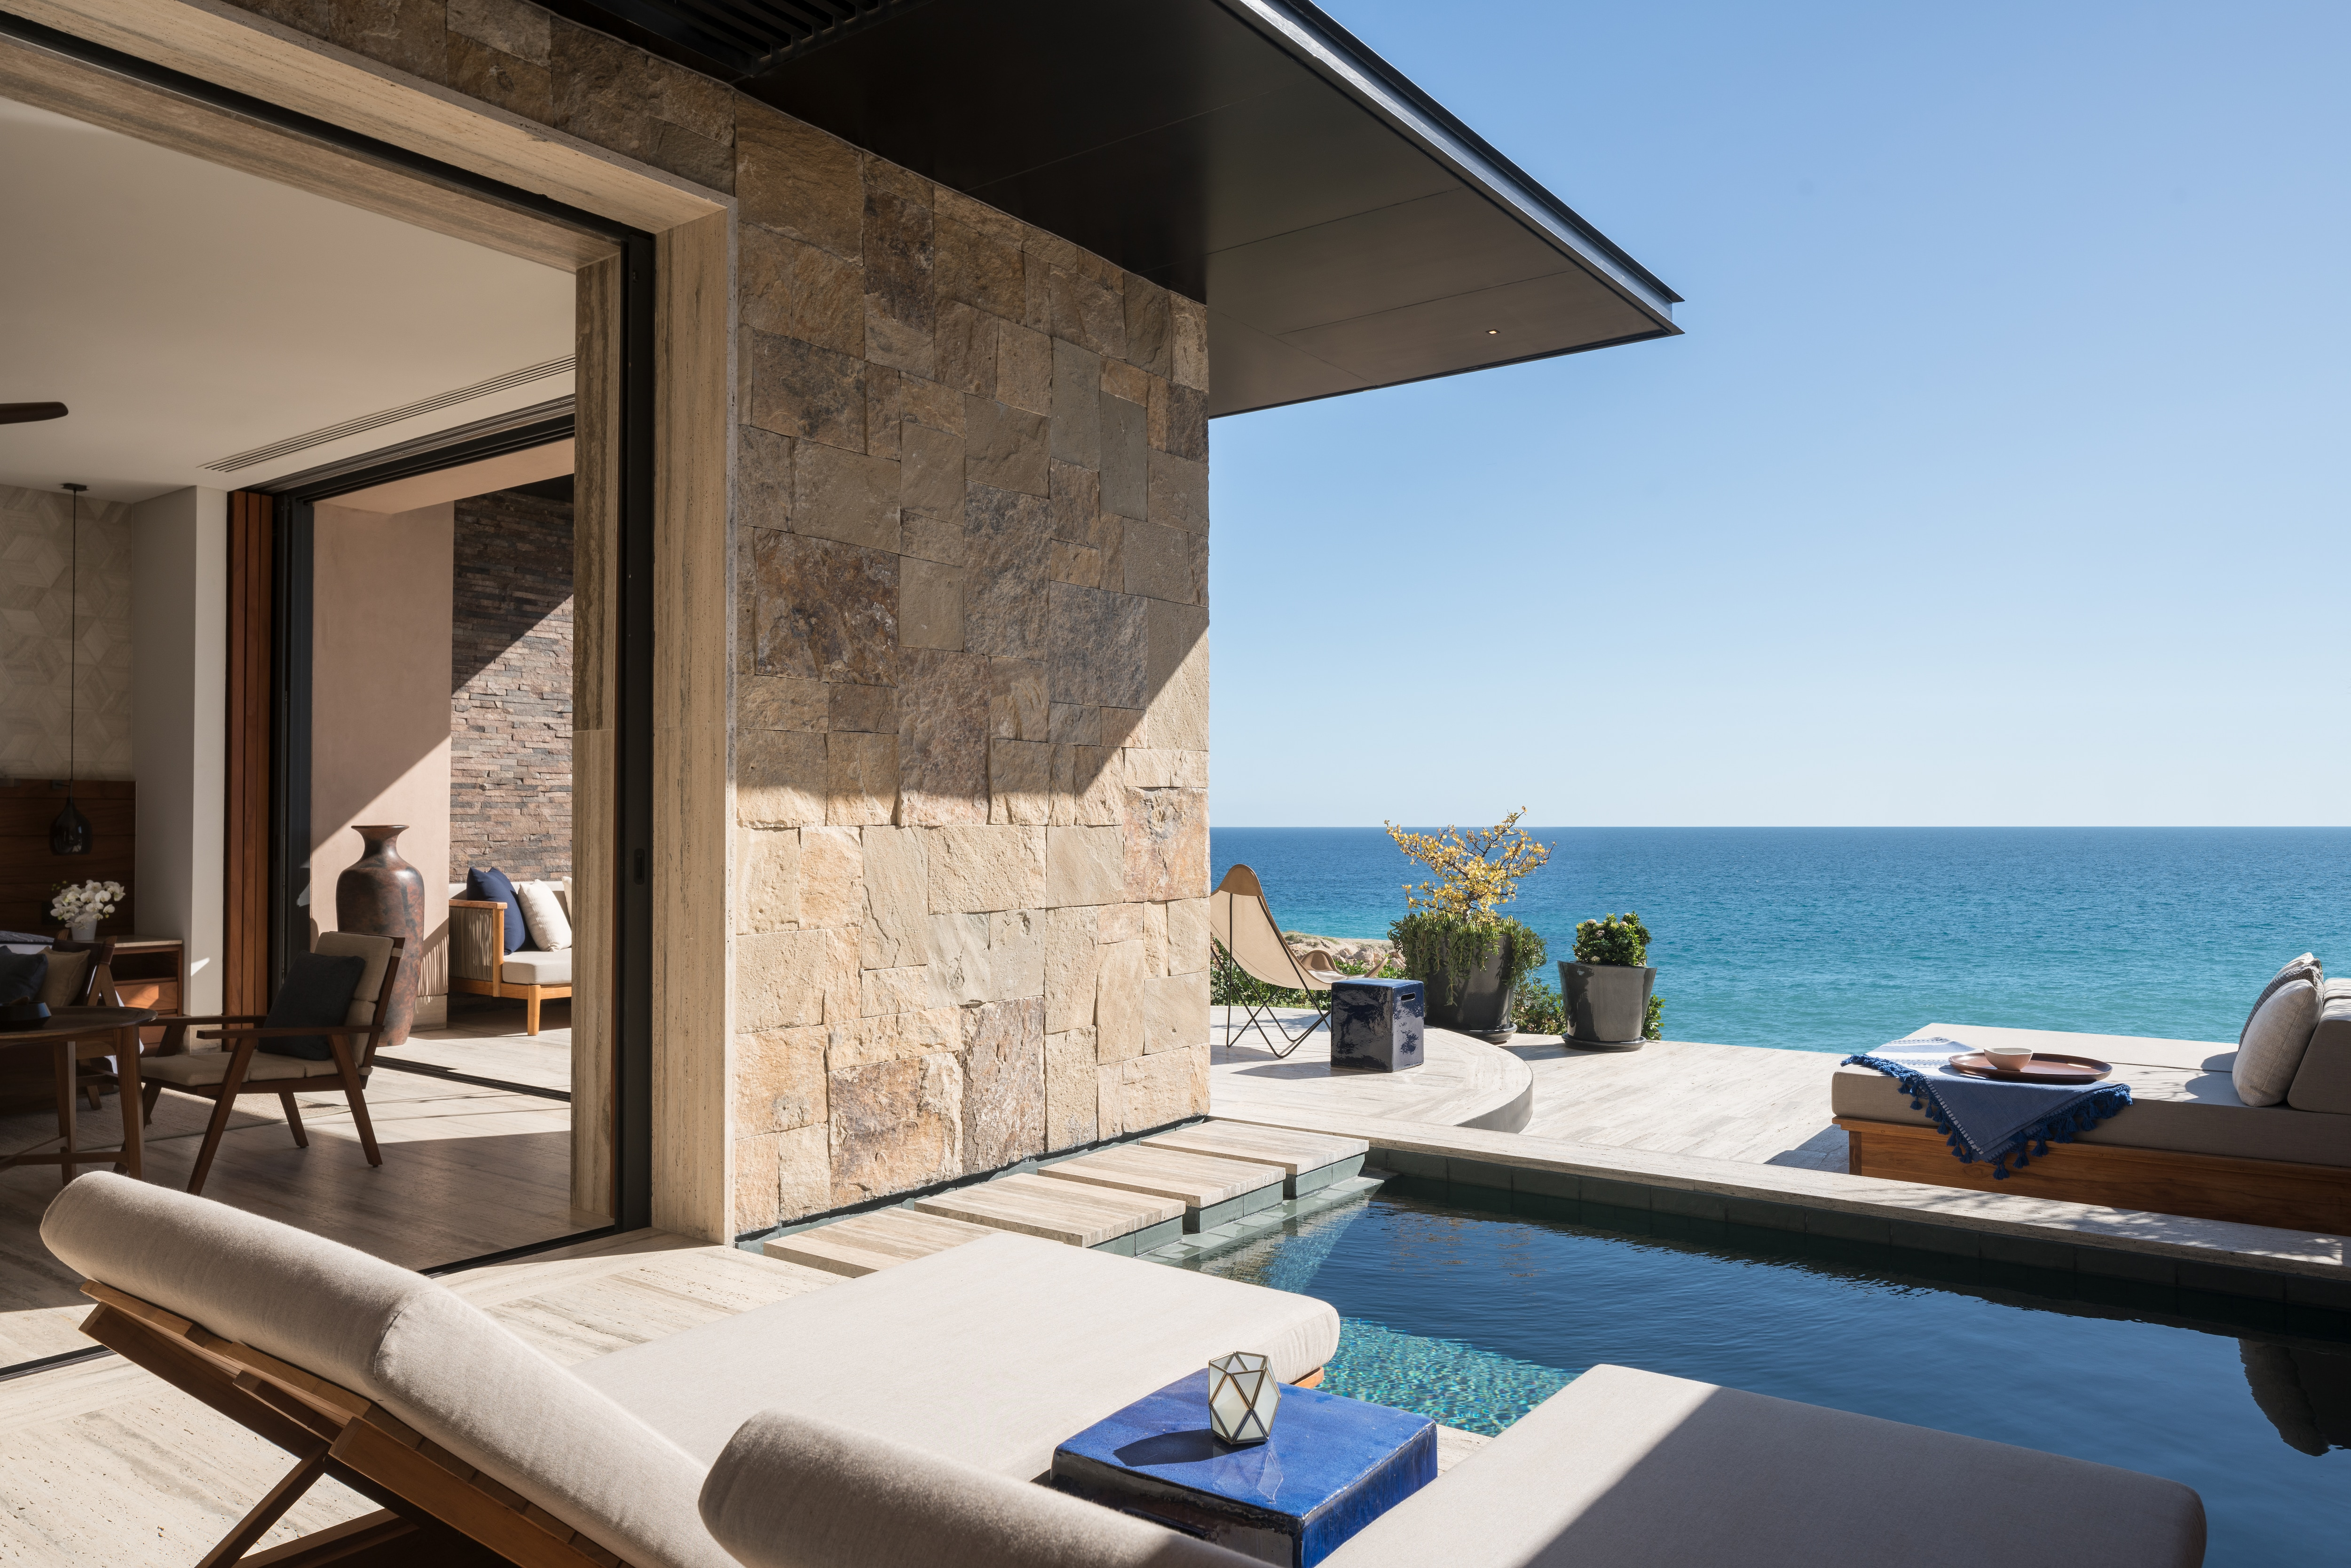 Inviting pool with sun loungers and sea view